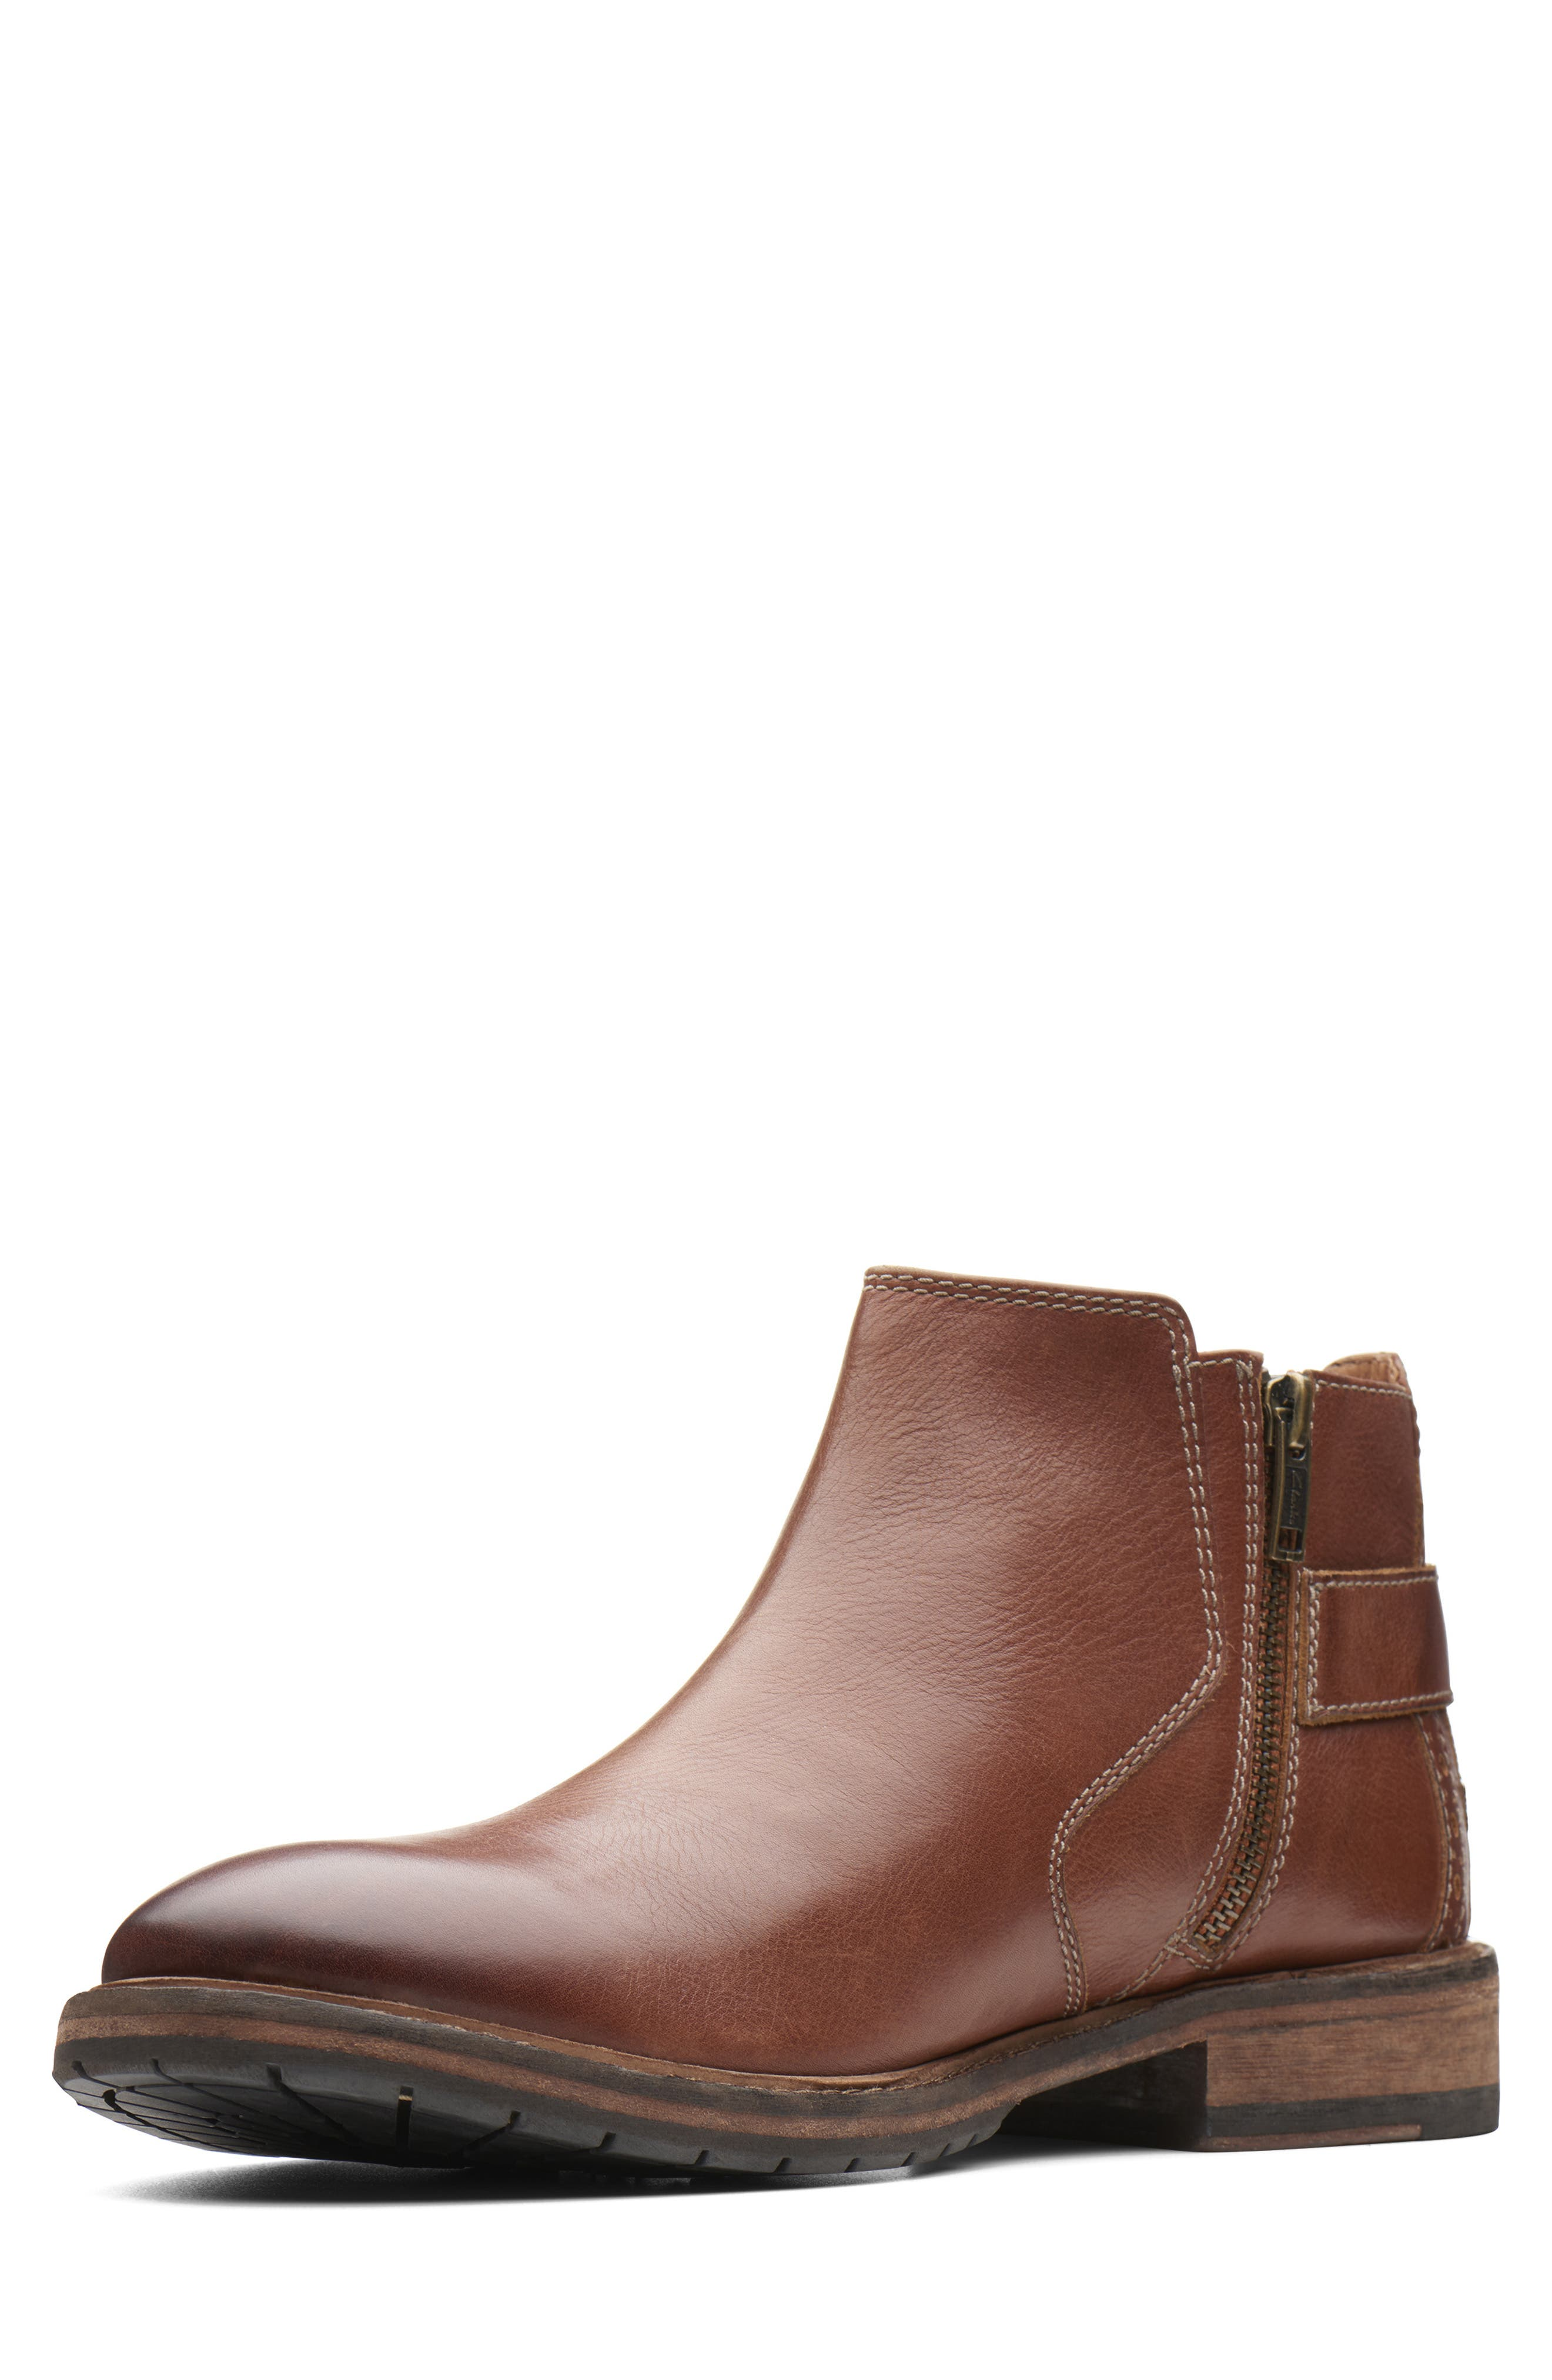 Clarkdale Remi Ankle Boot,                             Alternate thumbnail 6, color,                             DARK TAN LEATHER